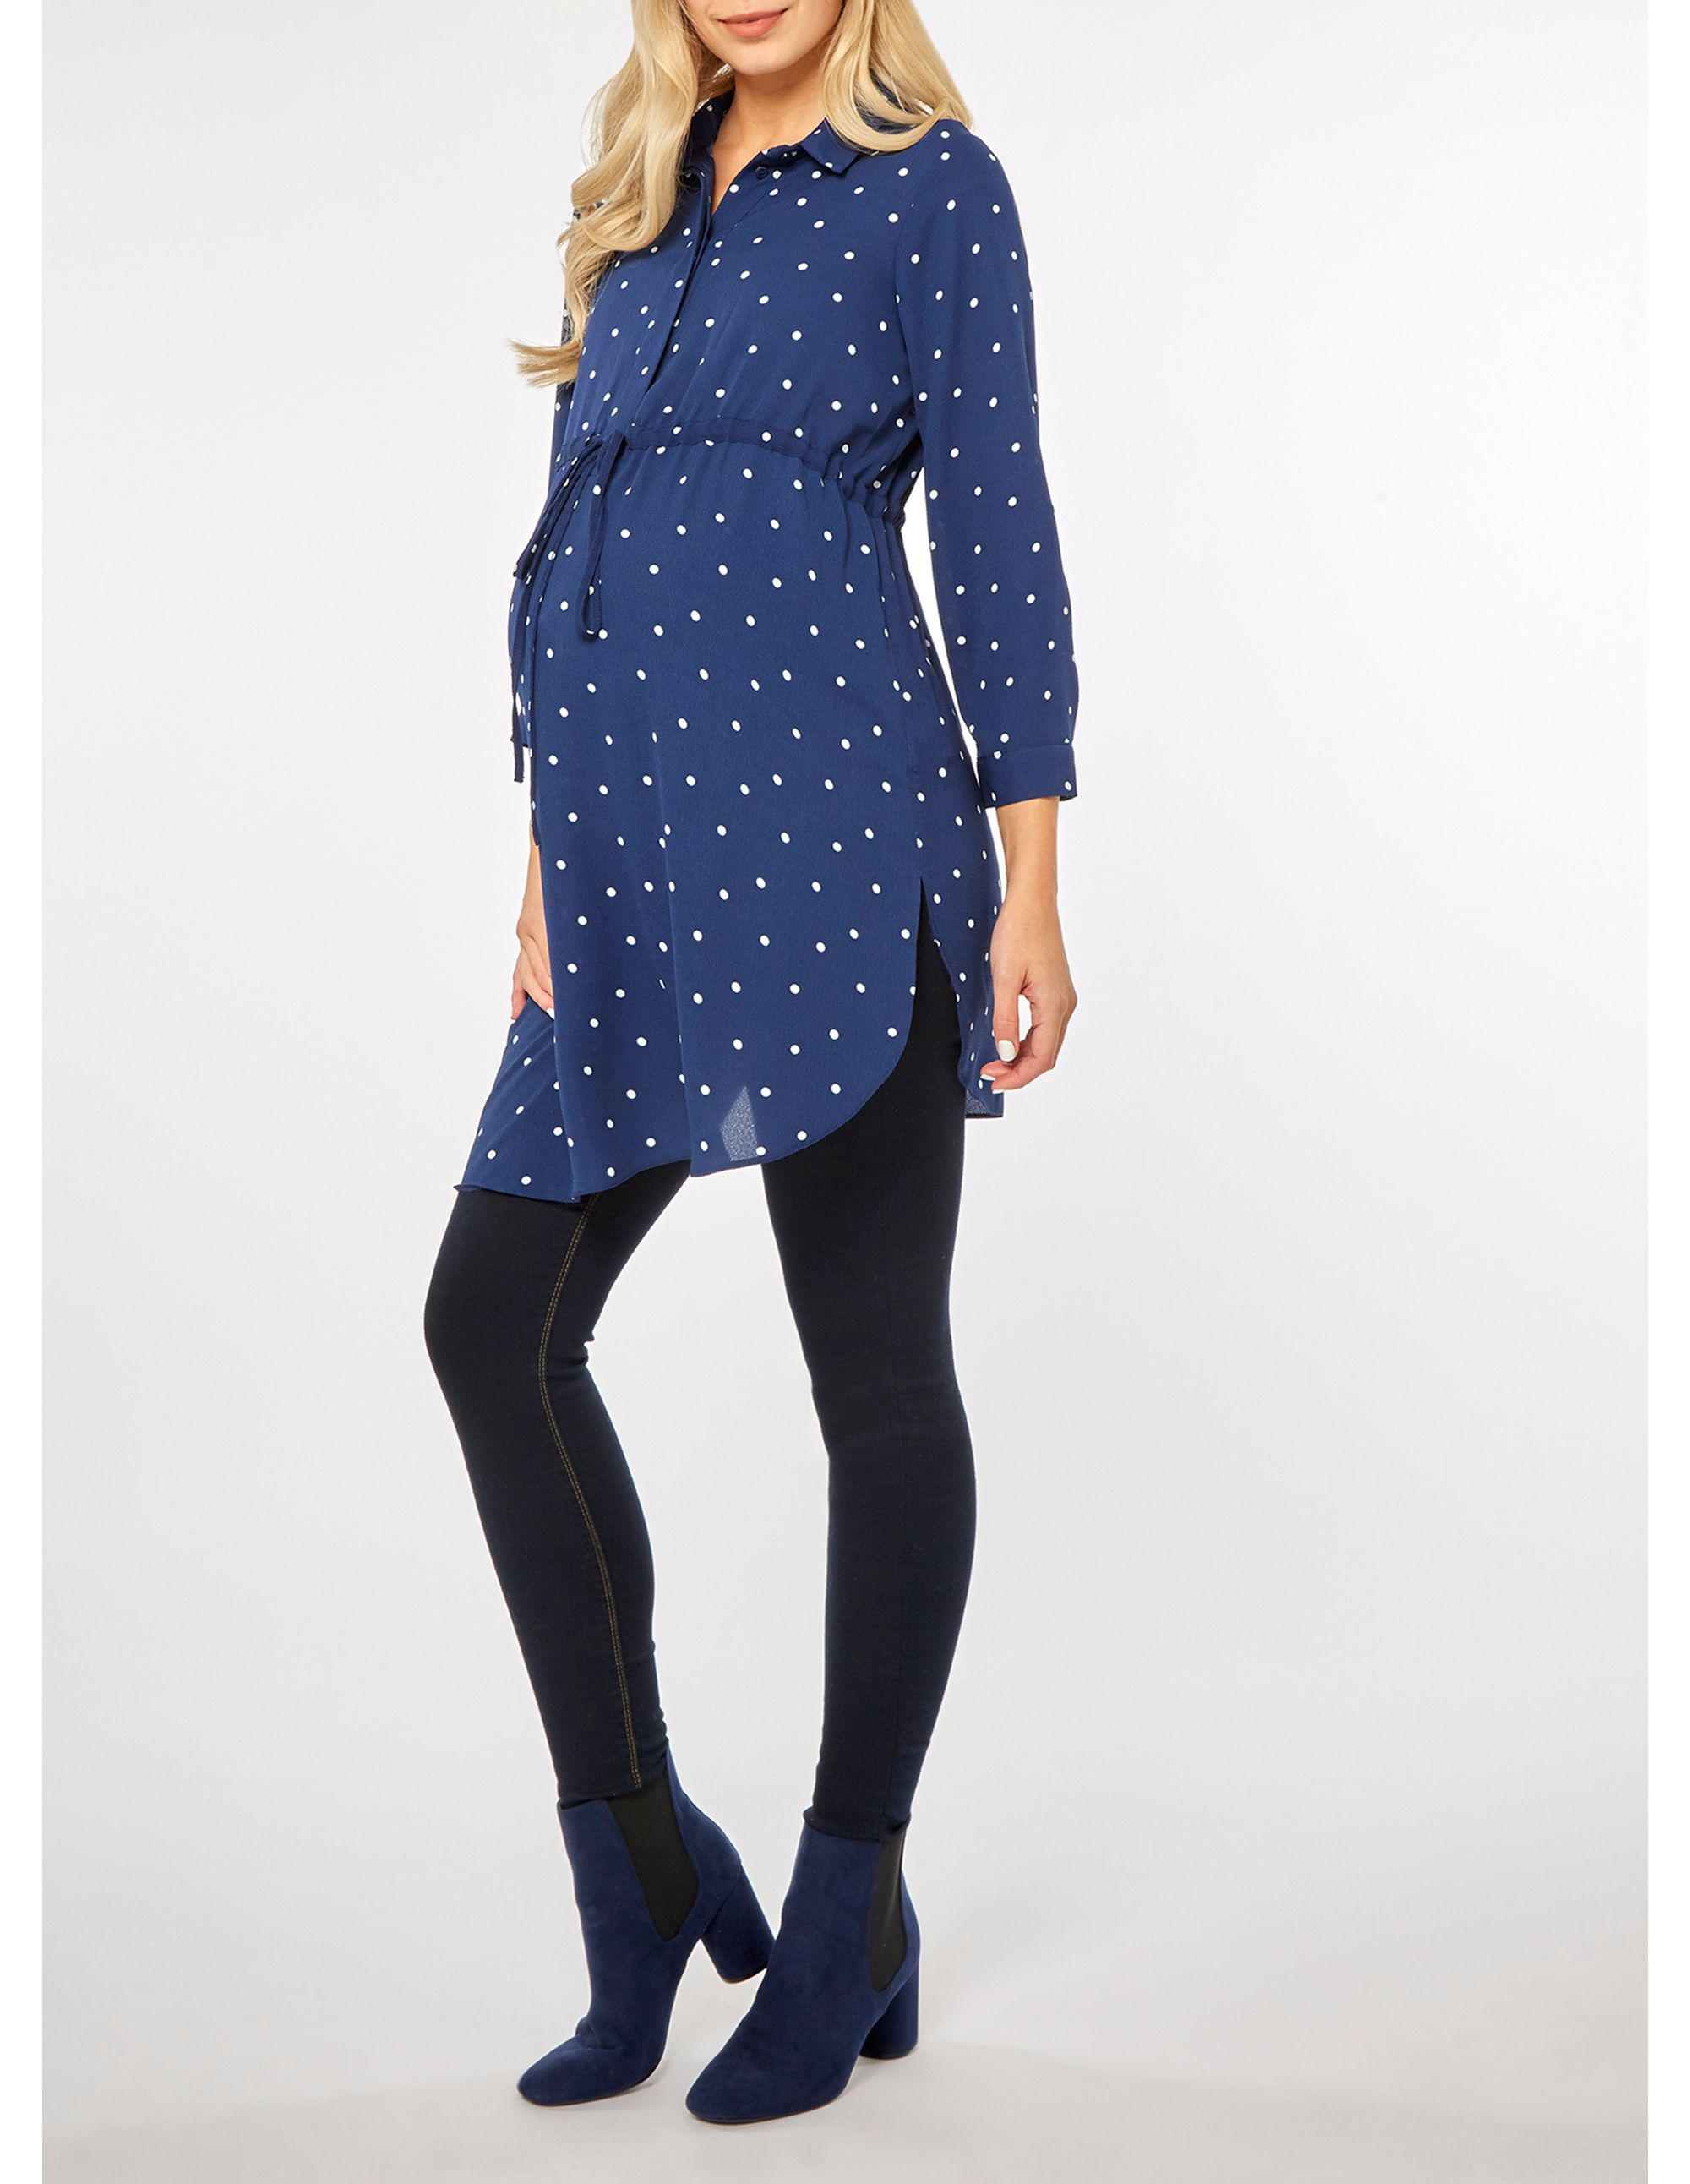 131332a4f21ba dorothy-perkins-Blue-Maternity-Navy-Spot-Channel-Waist-Tunic-Top.jpeg